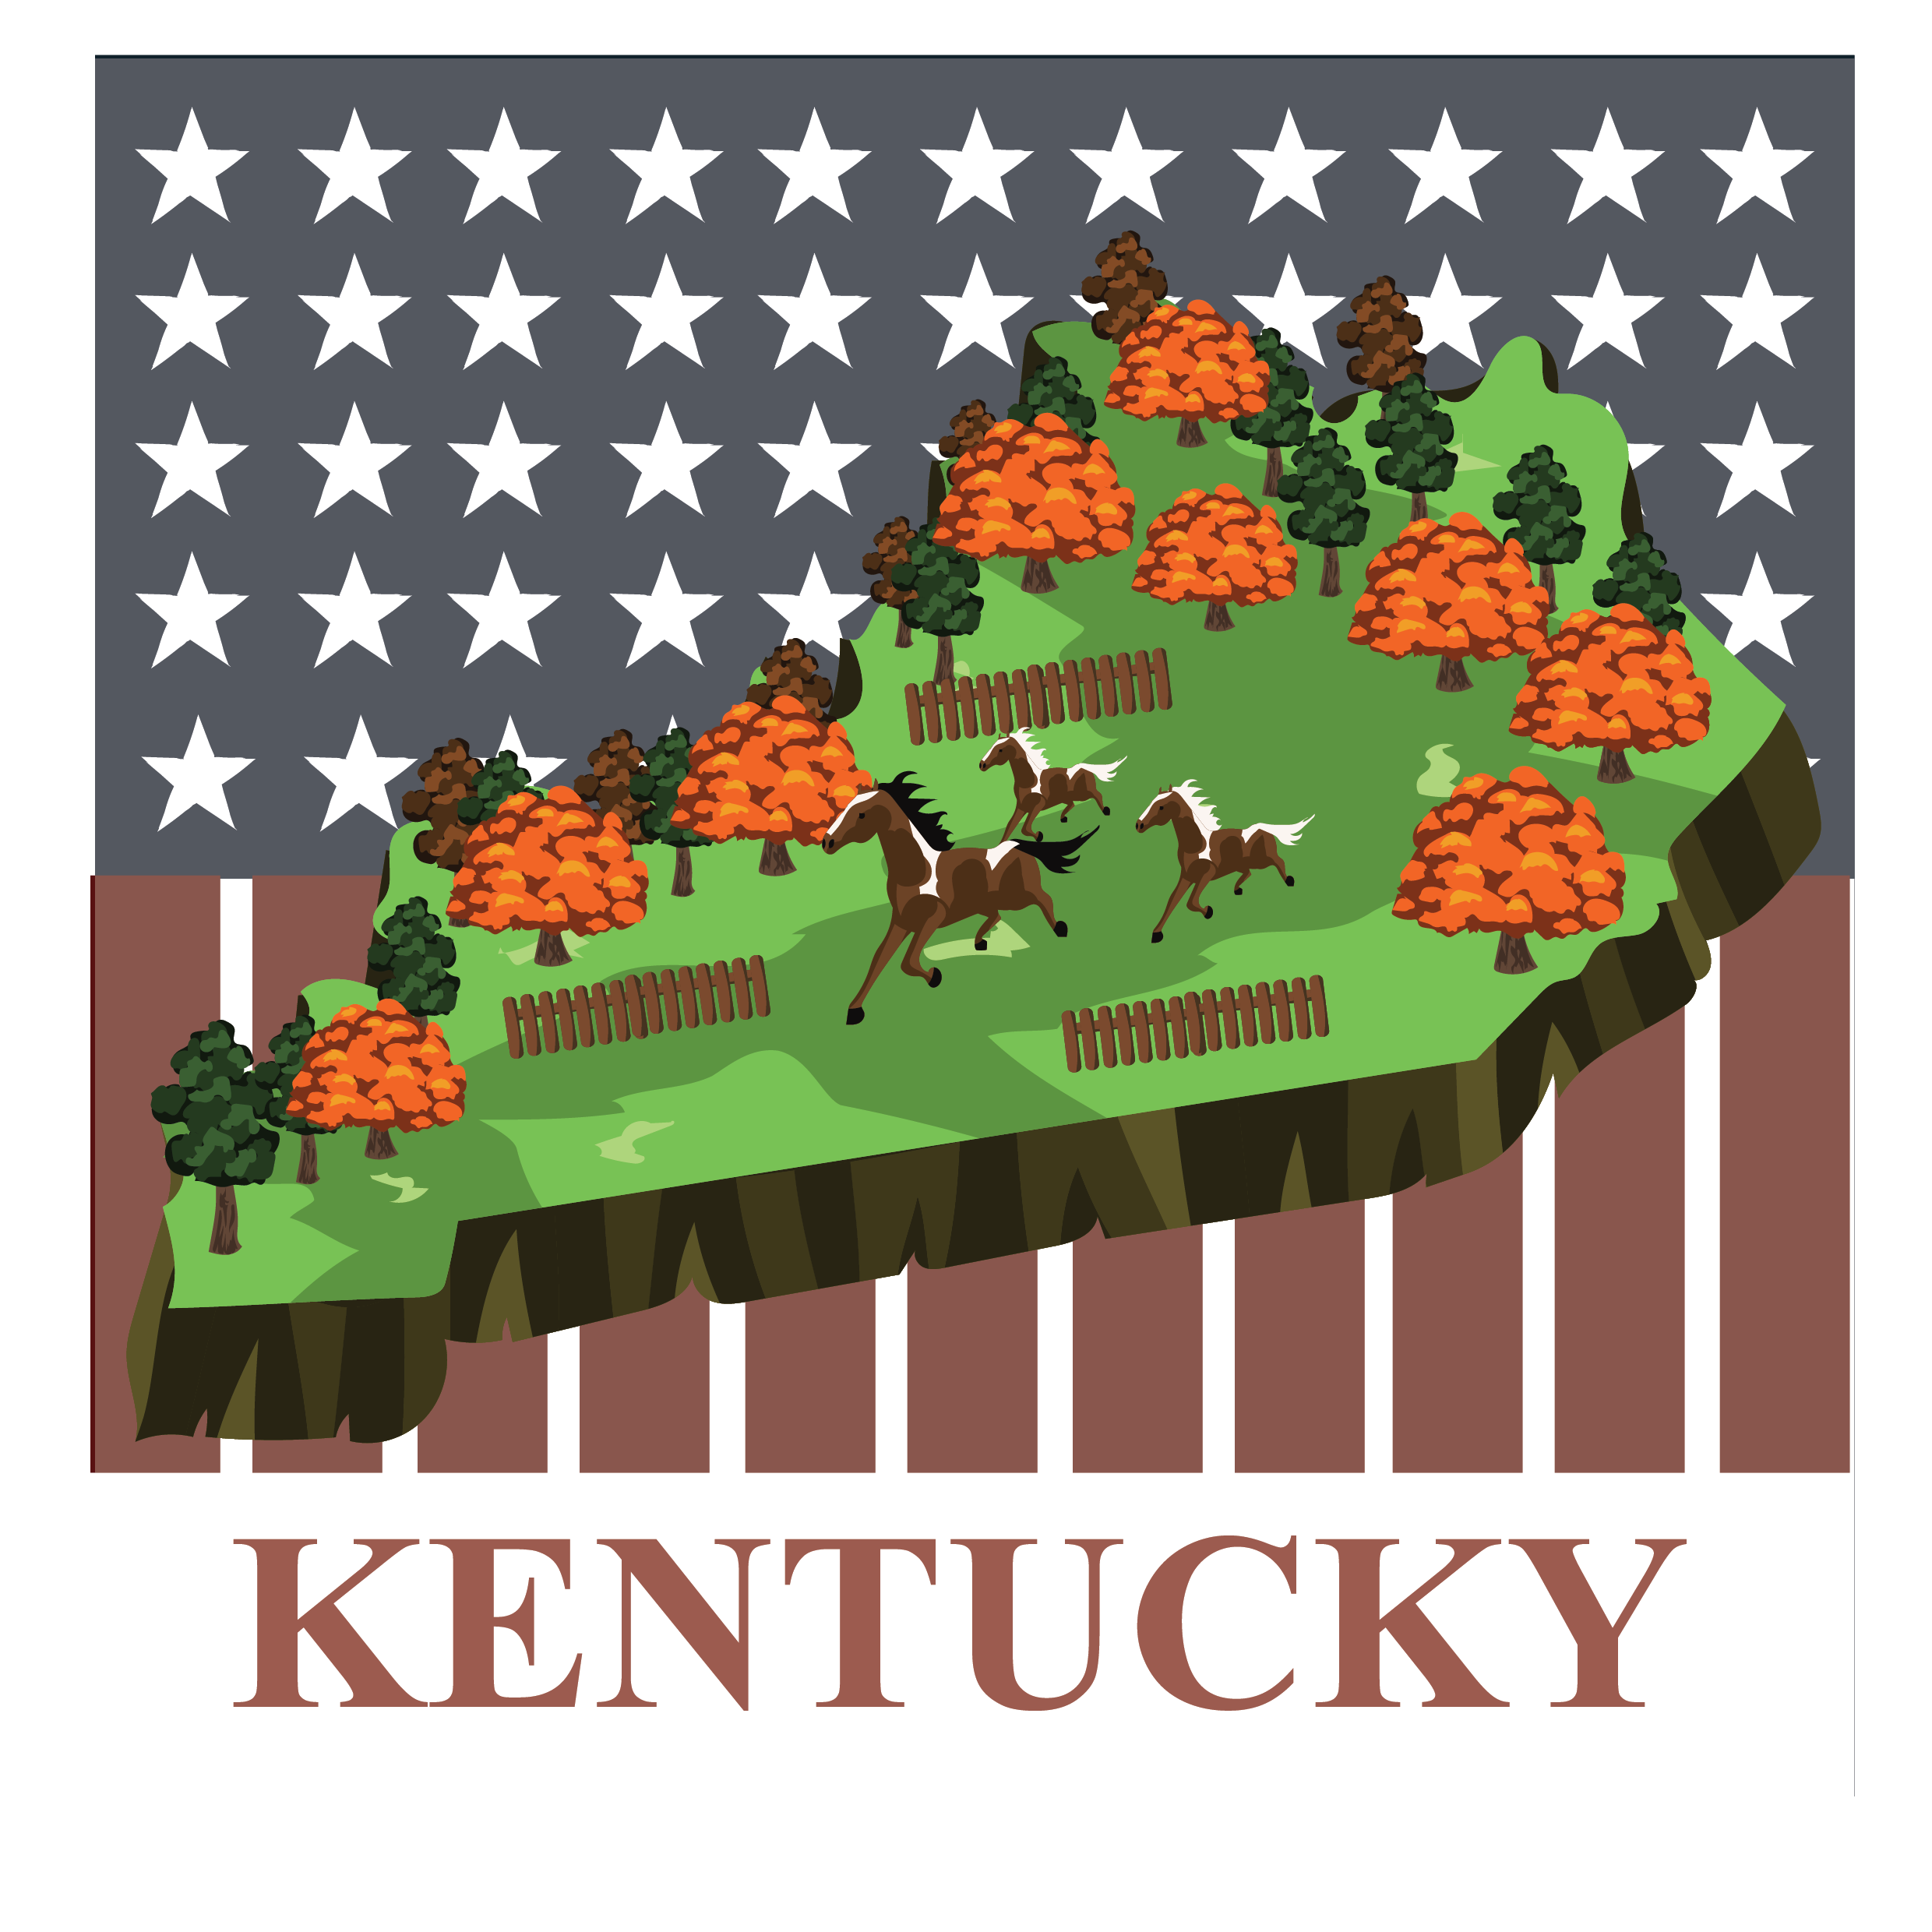 3d pictomap of kentucky